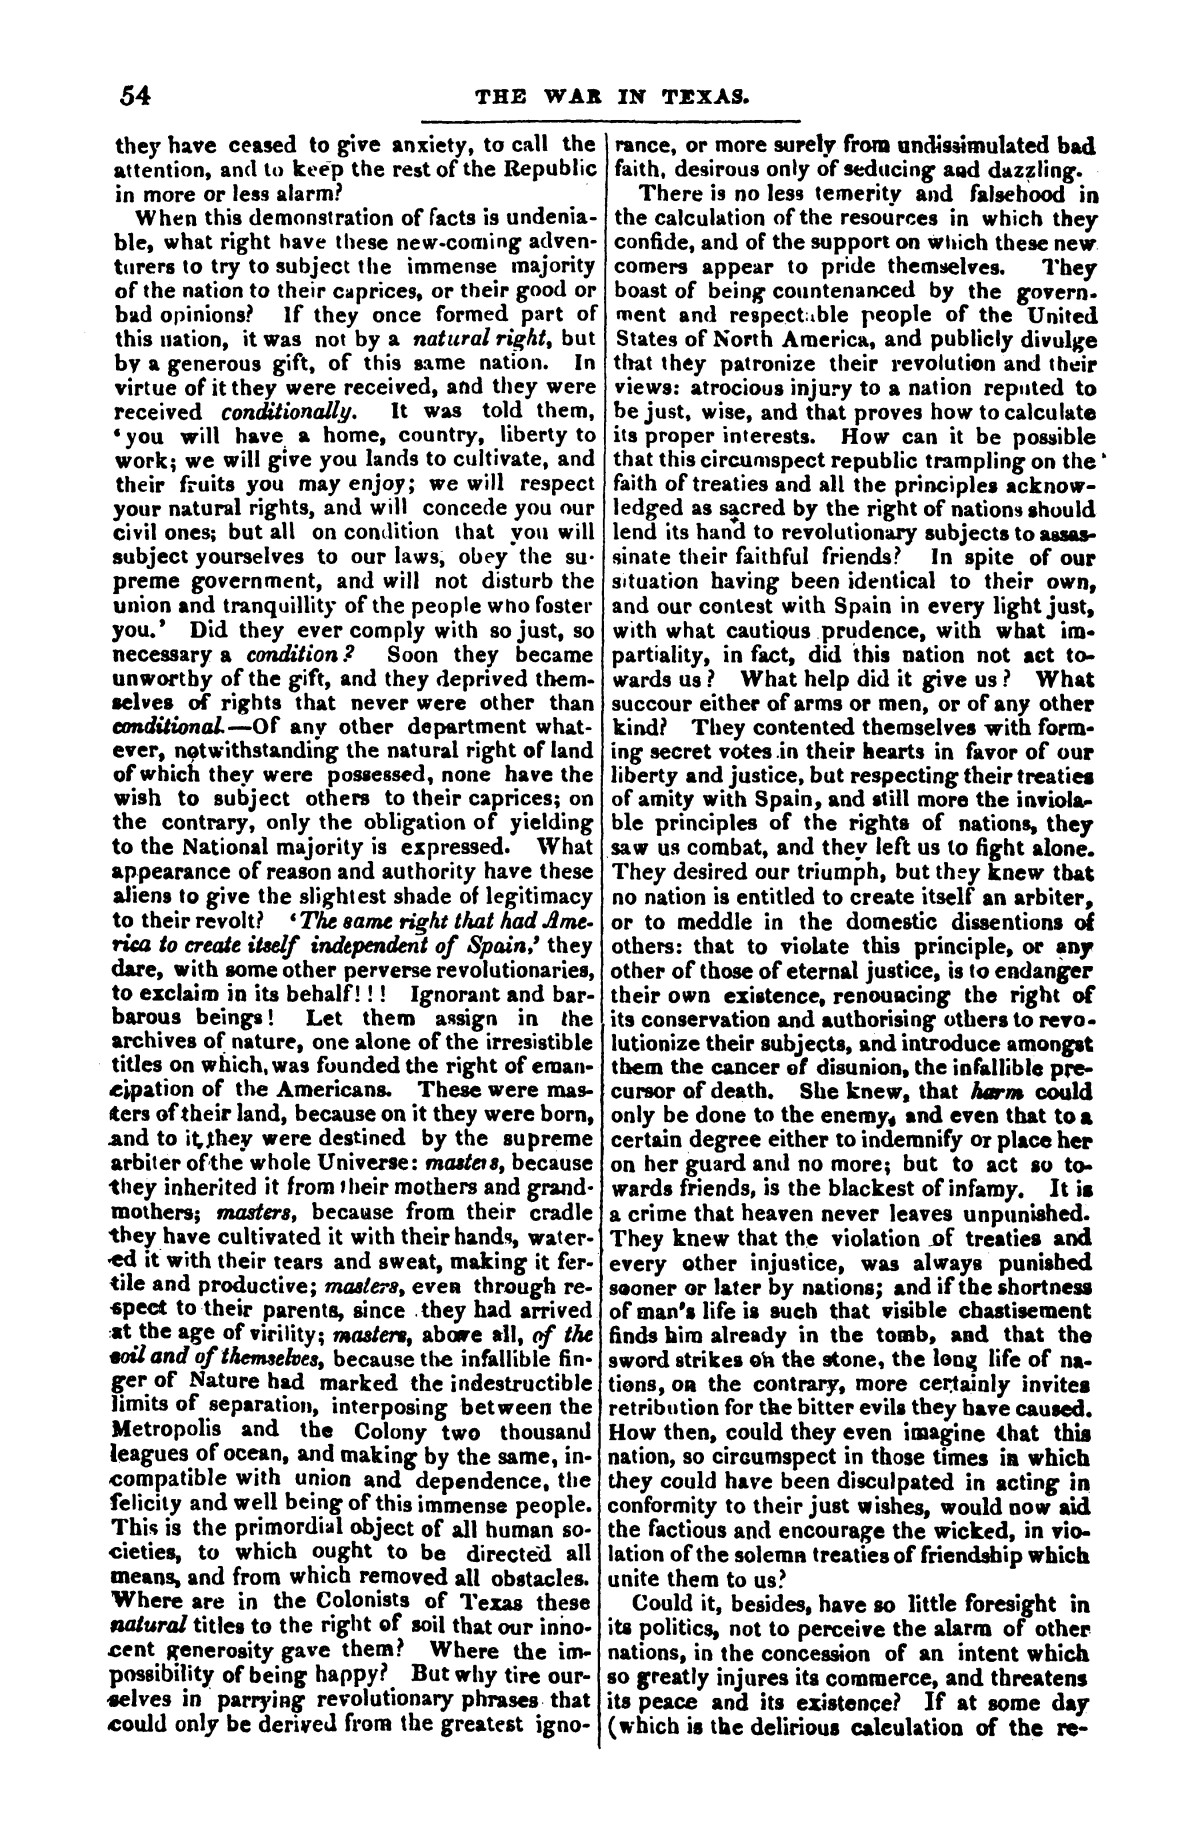 The war in Texas; a review of facts and circumstances, showing that this contest is a crusade against Mexico, set on foot by slaveholders, land speculators, & c. in order to re-establish, extend, and perpetuate the system of slavery and the slave trade.                                                                                                      [Sequence #]: 54 of 64